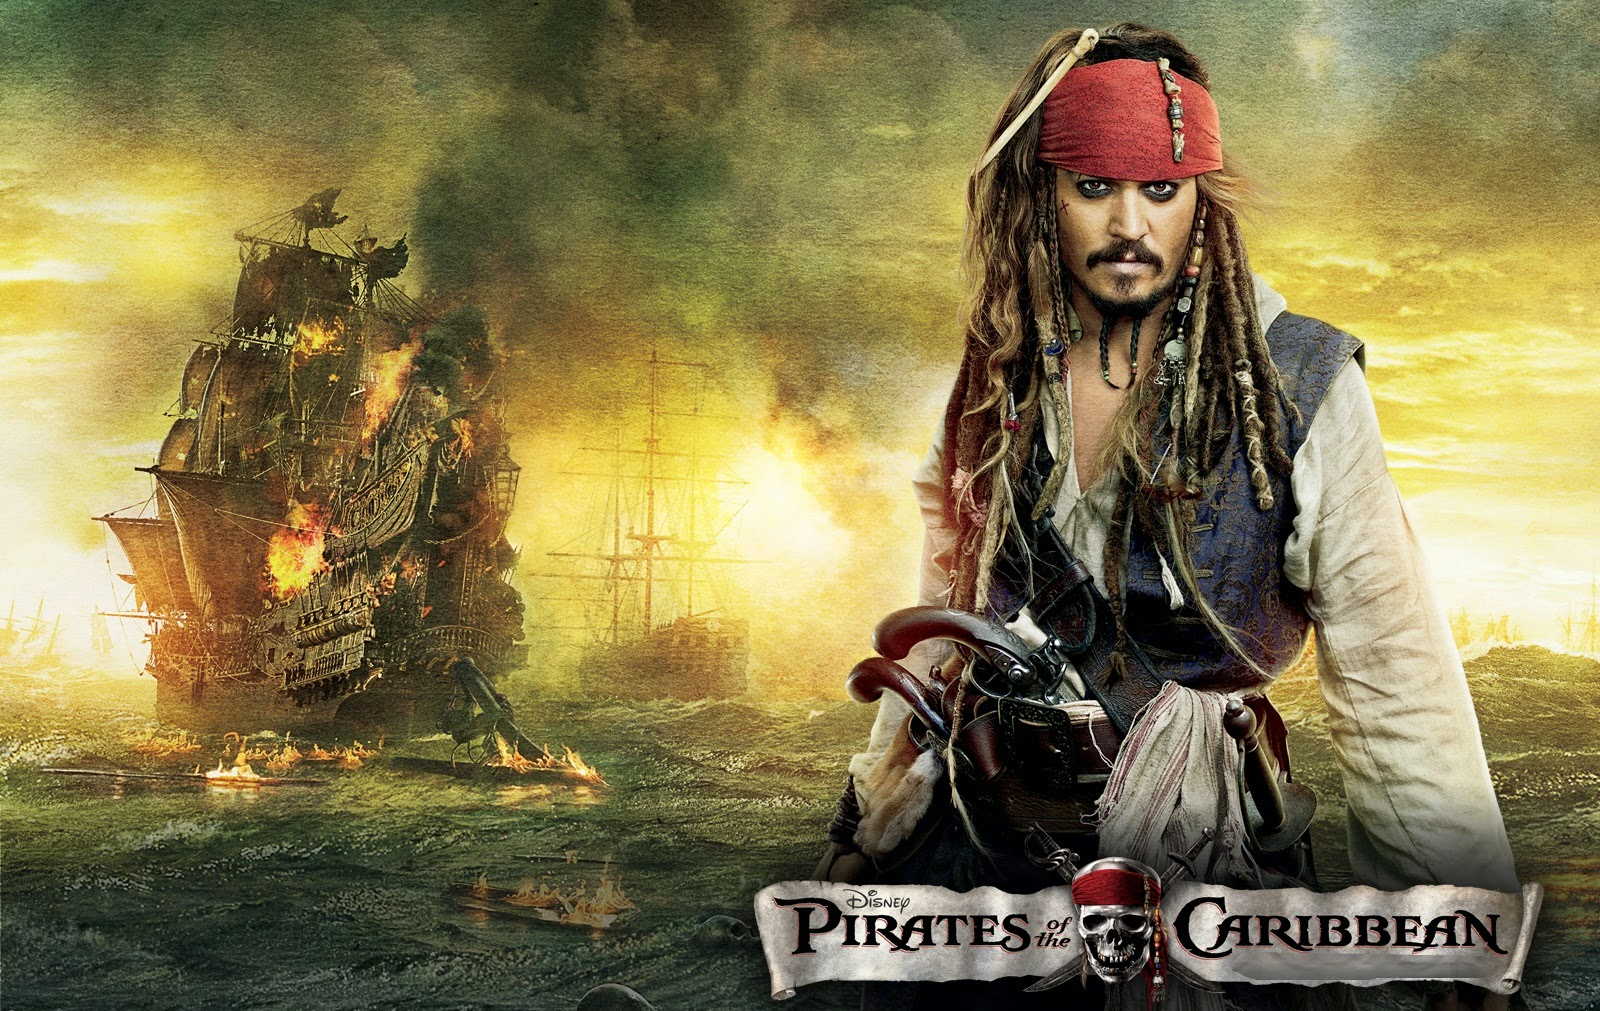 「Pirates of the Caribbean」の画像検索結果